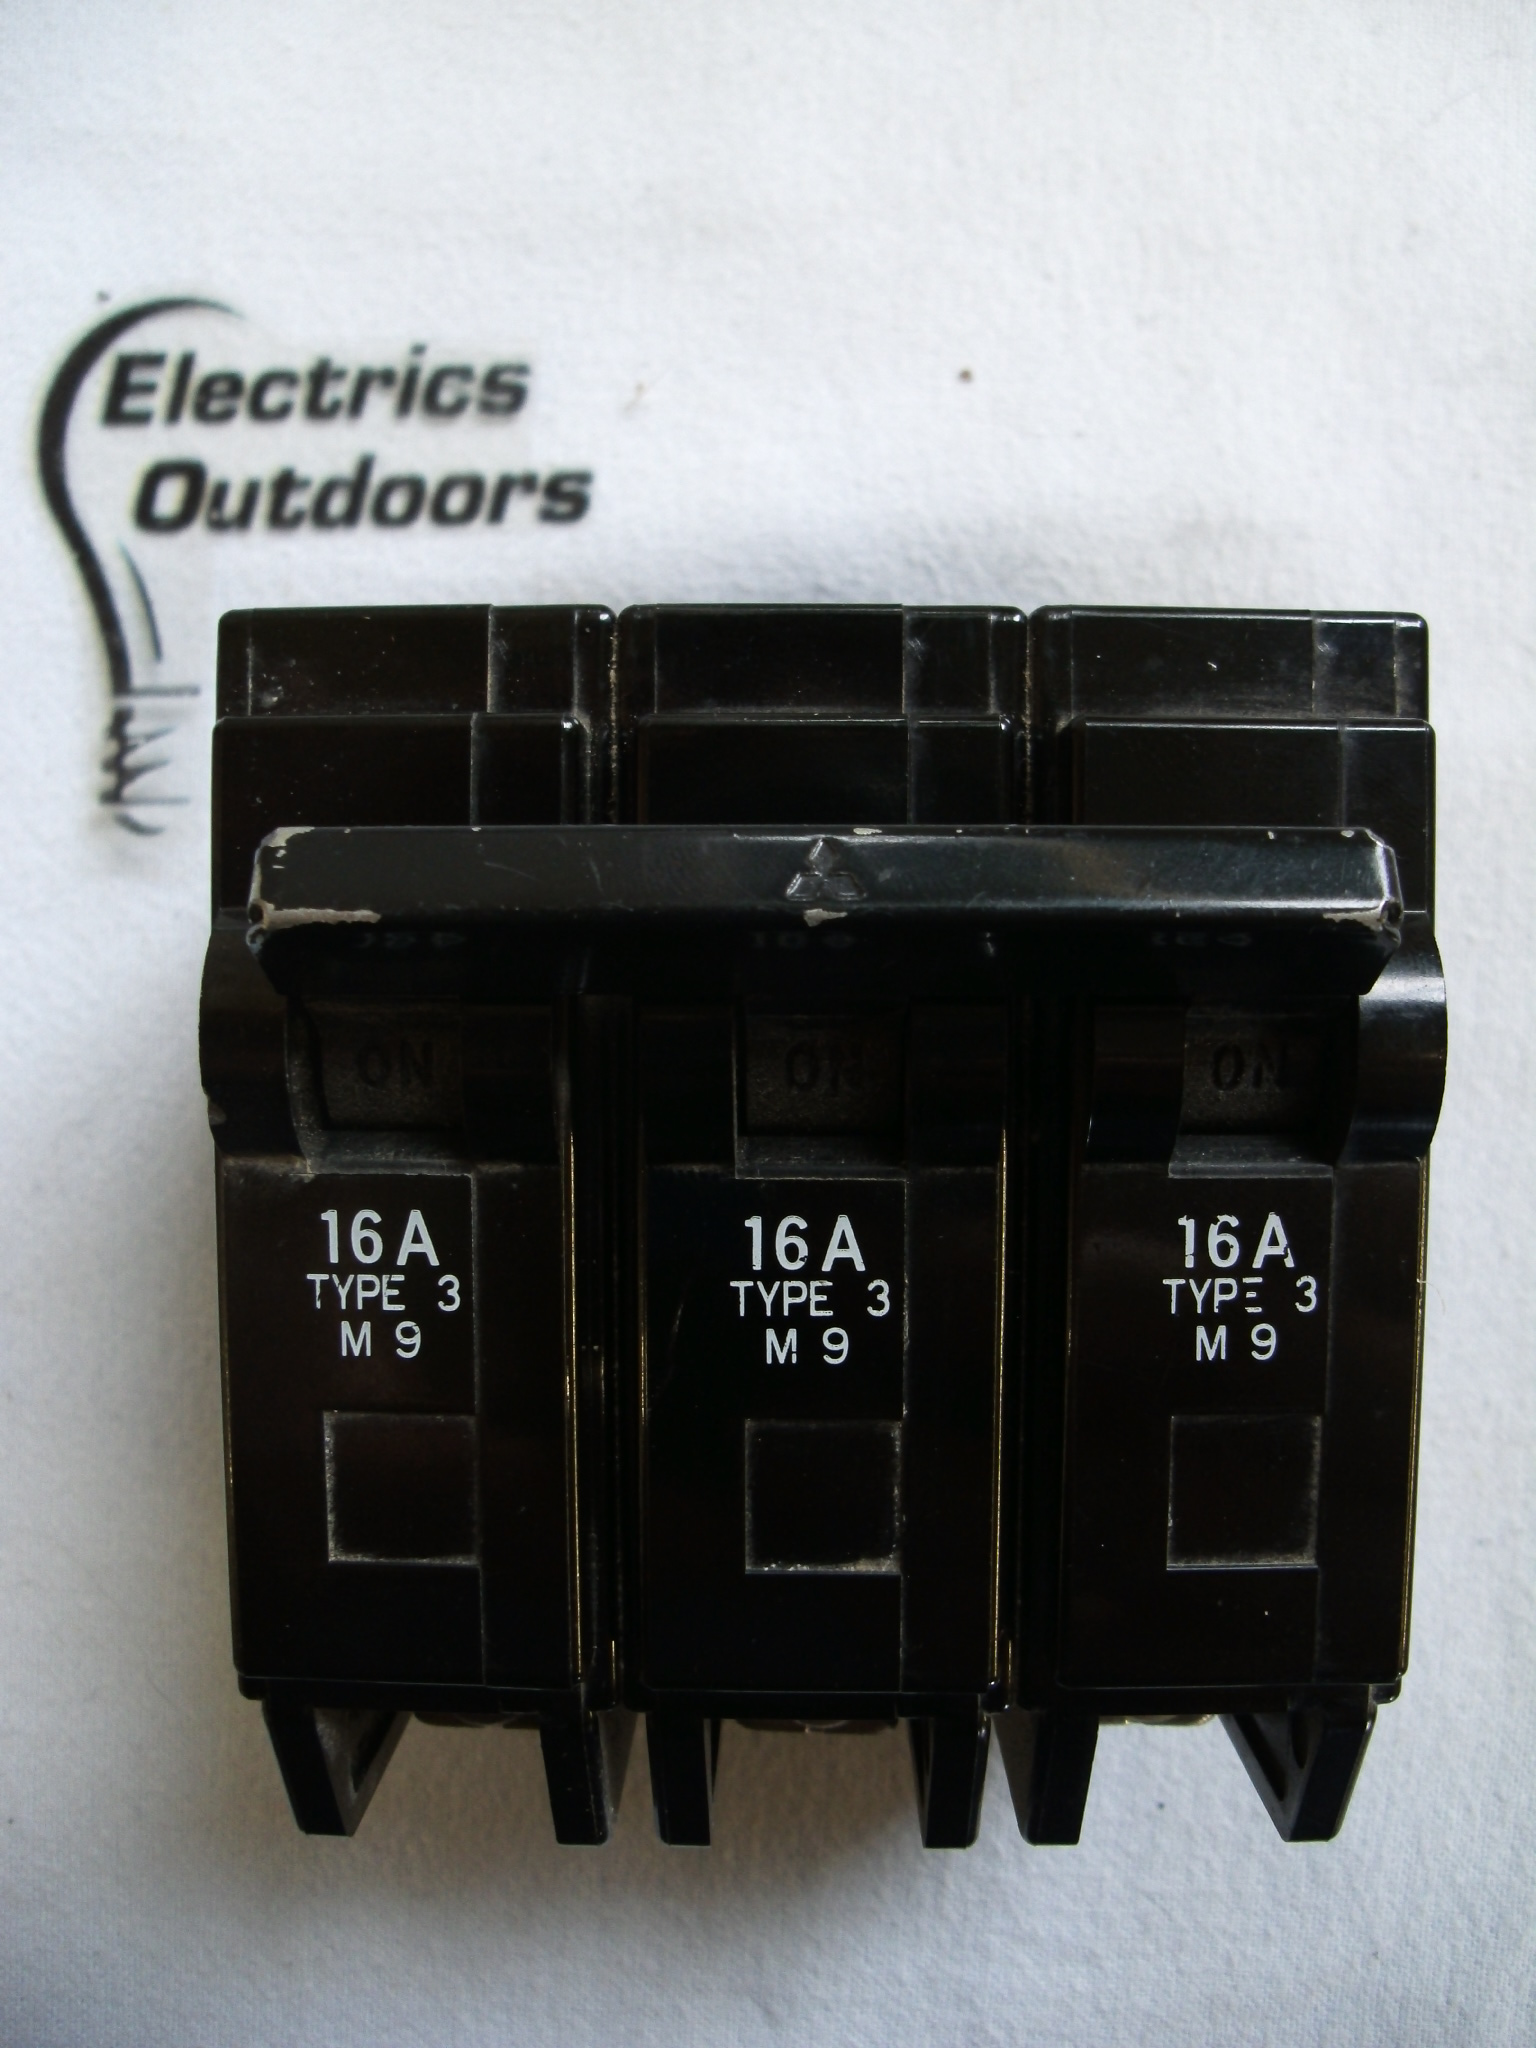 MITSUBISHI 16 AMP TYPE 3 M9 TRIPLE POLE MCB CIRCUIT BREAKER BH PS BS 3871